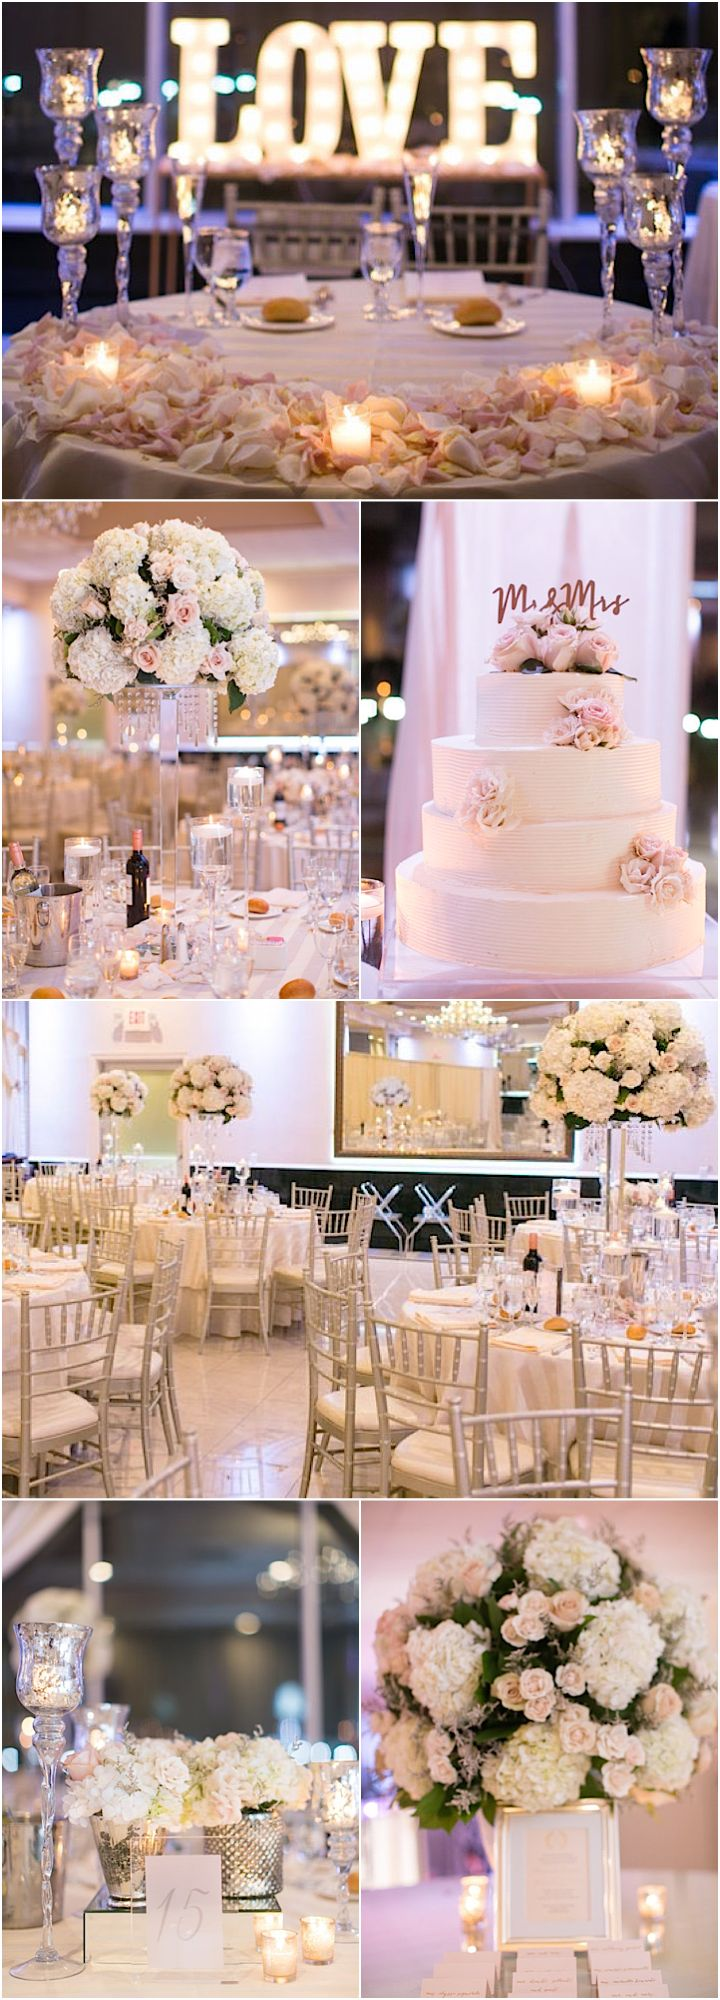 Featured Photographer: Amy Rizzuto; pink and white wedding reception